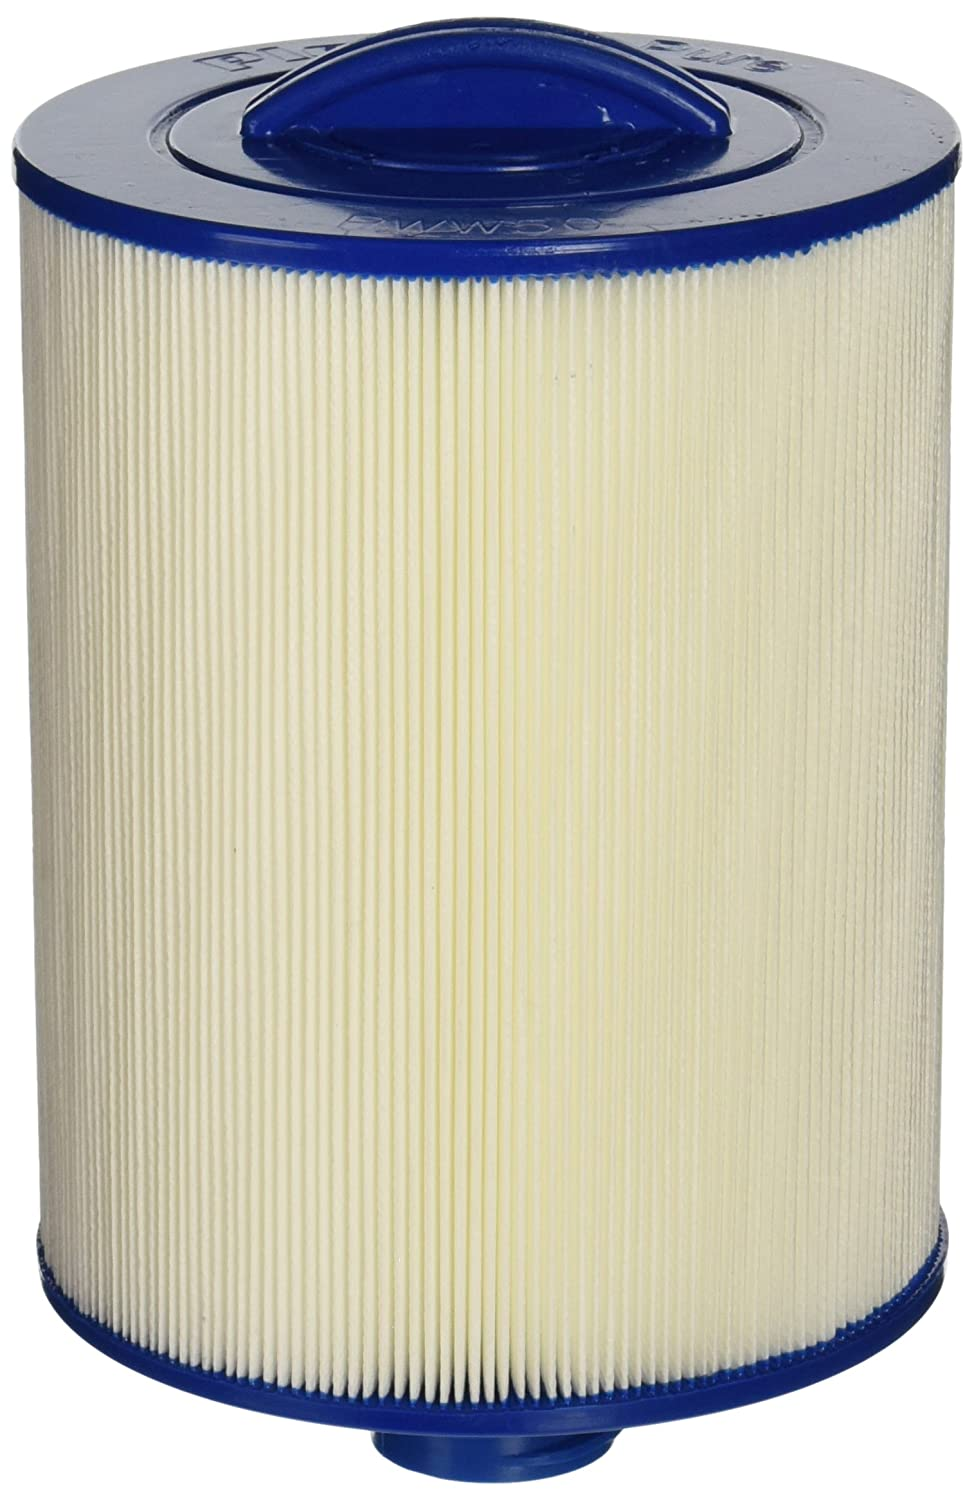 Pleatco PWW50P3 Replacement Cartridge for Waterway Front Access Skimmer 2 required 1 Cartridge